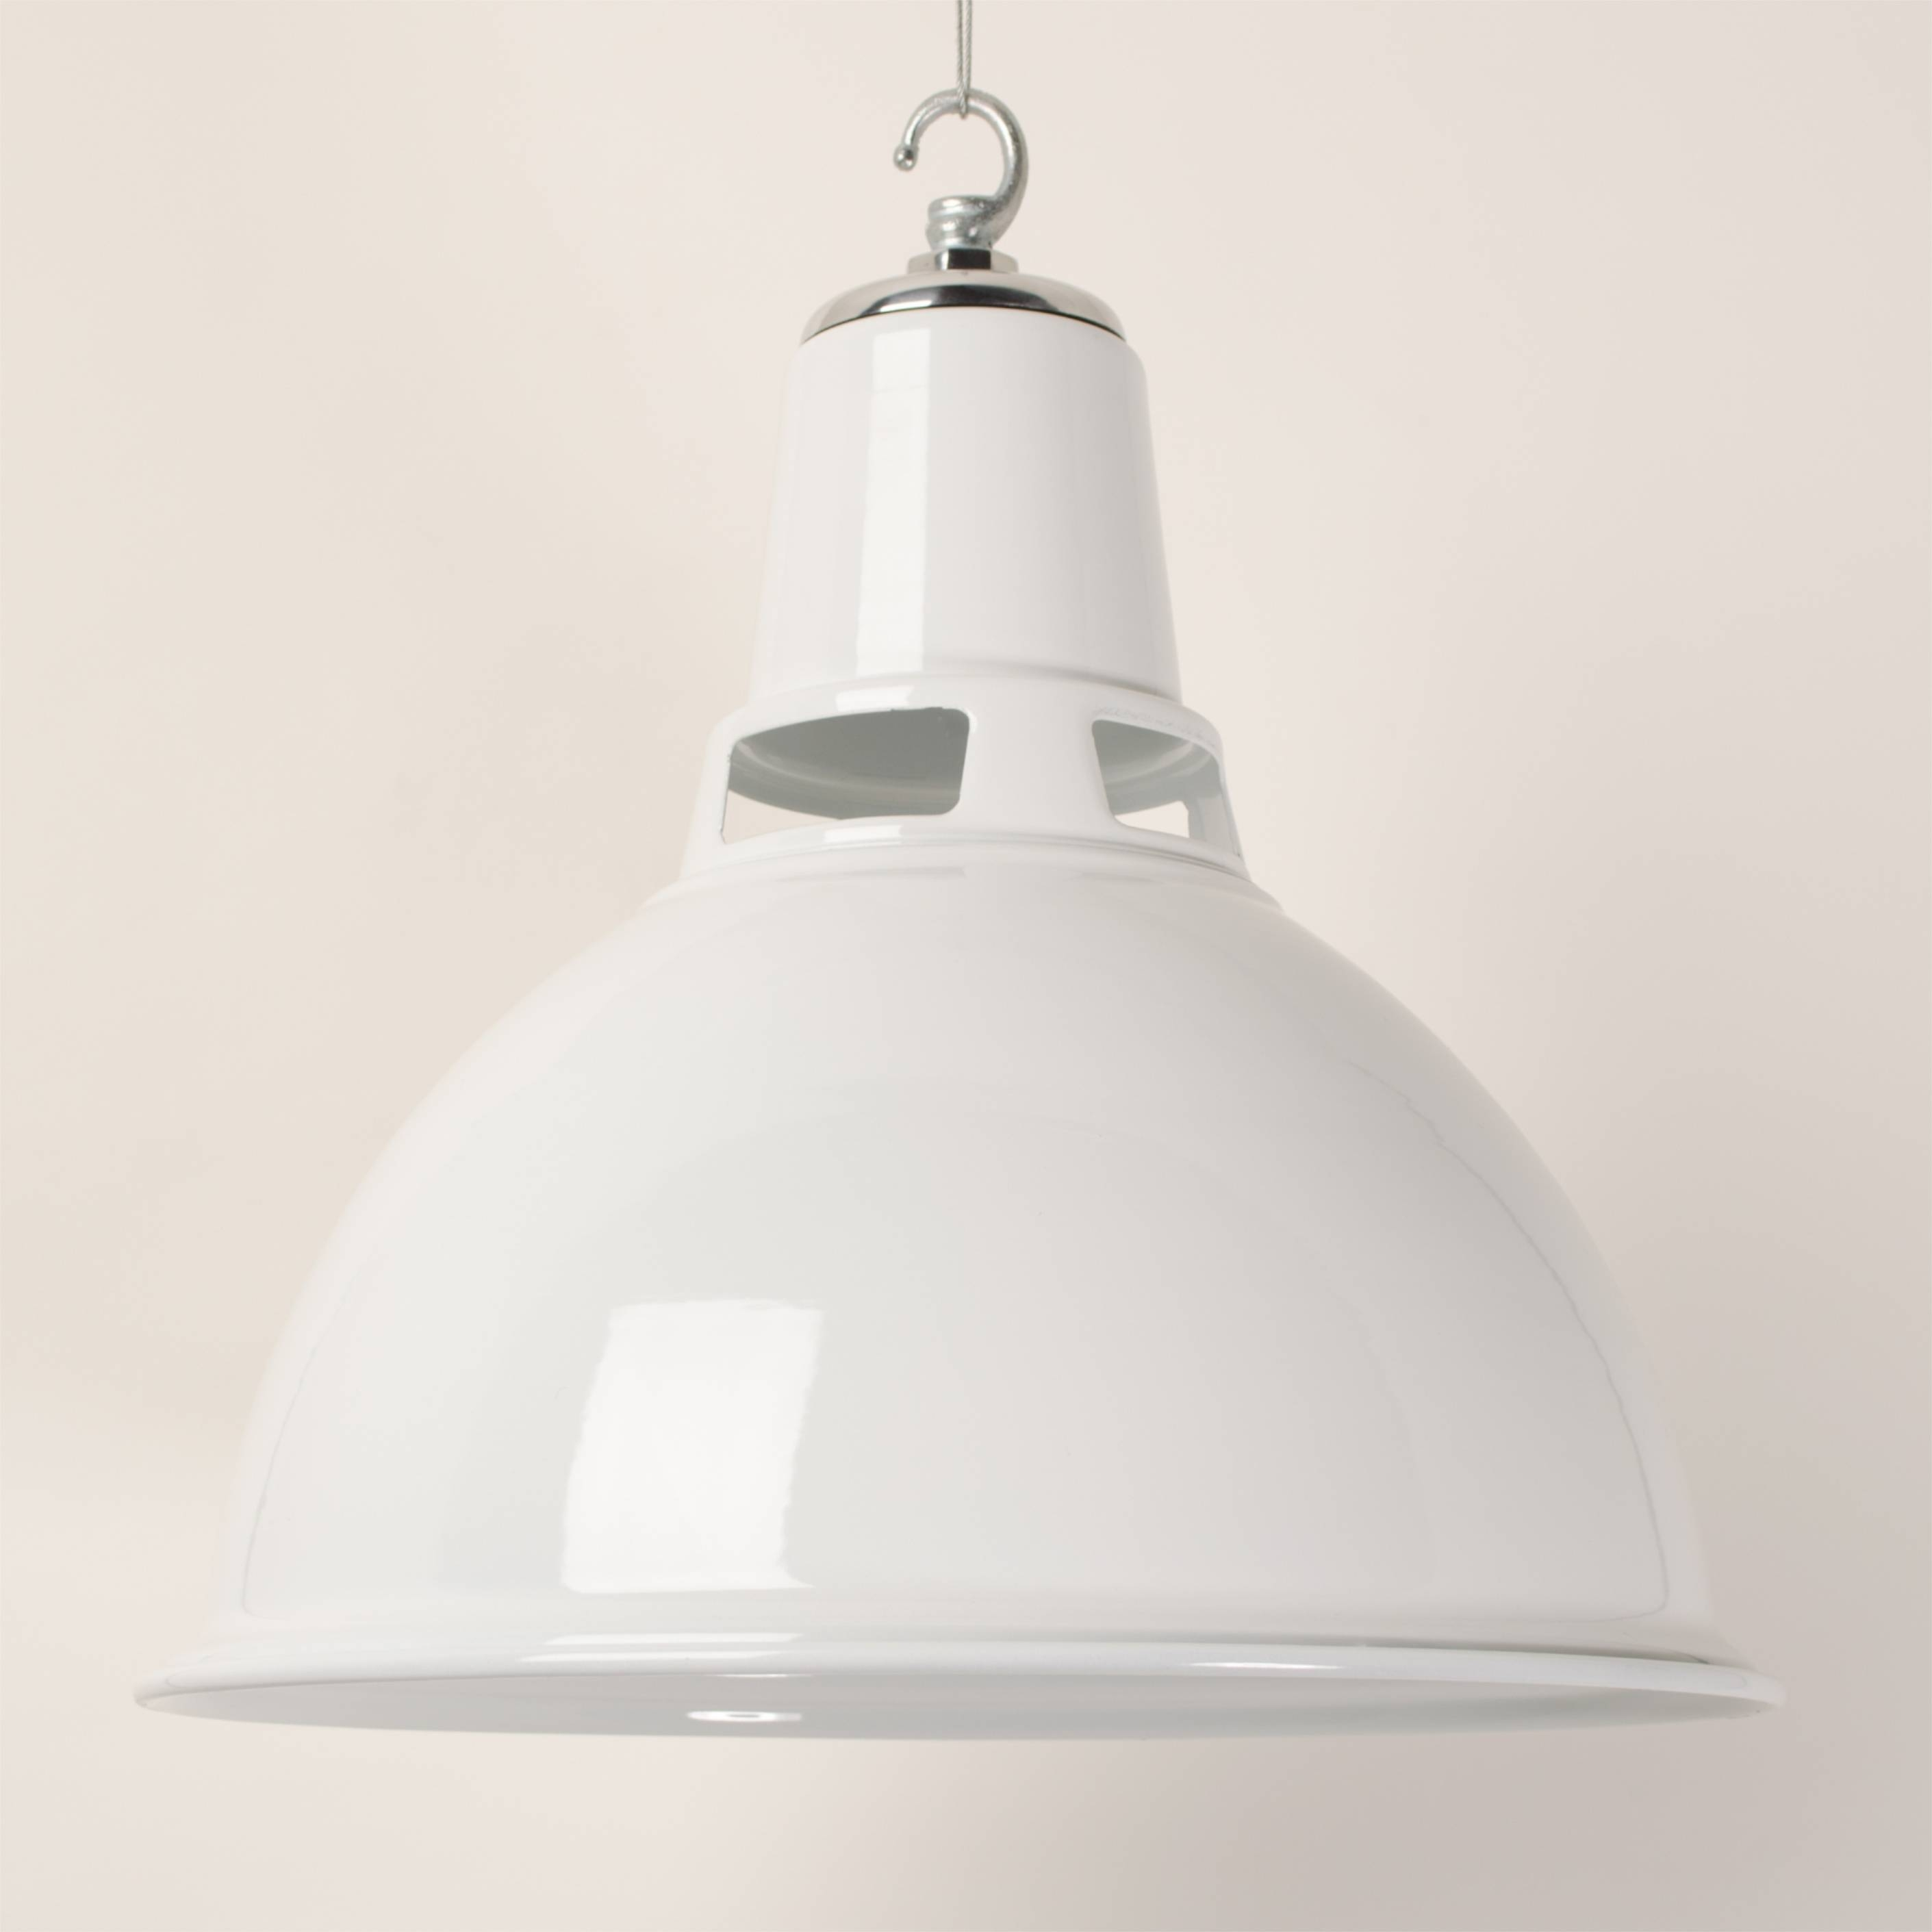 Elegant Commercial Pendant Lighting For House Decorating throughout Commercial Pendant Light Fixtures (Image 6 of 15)